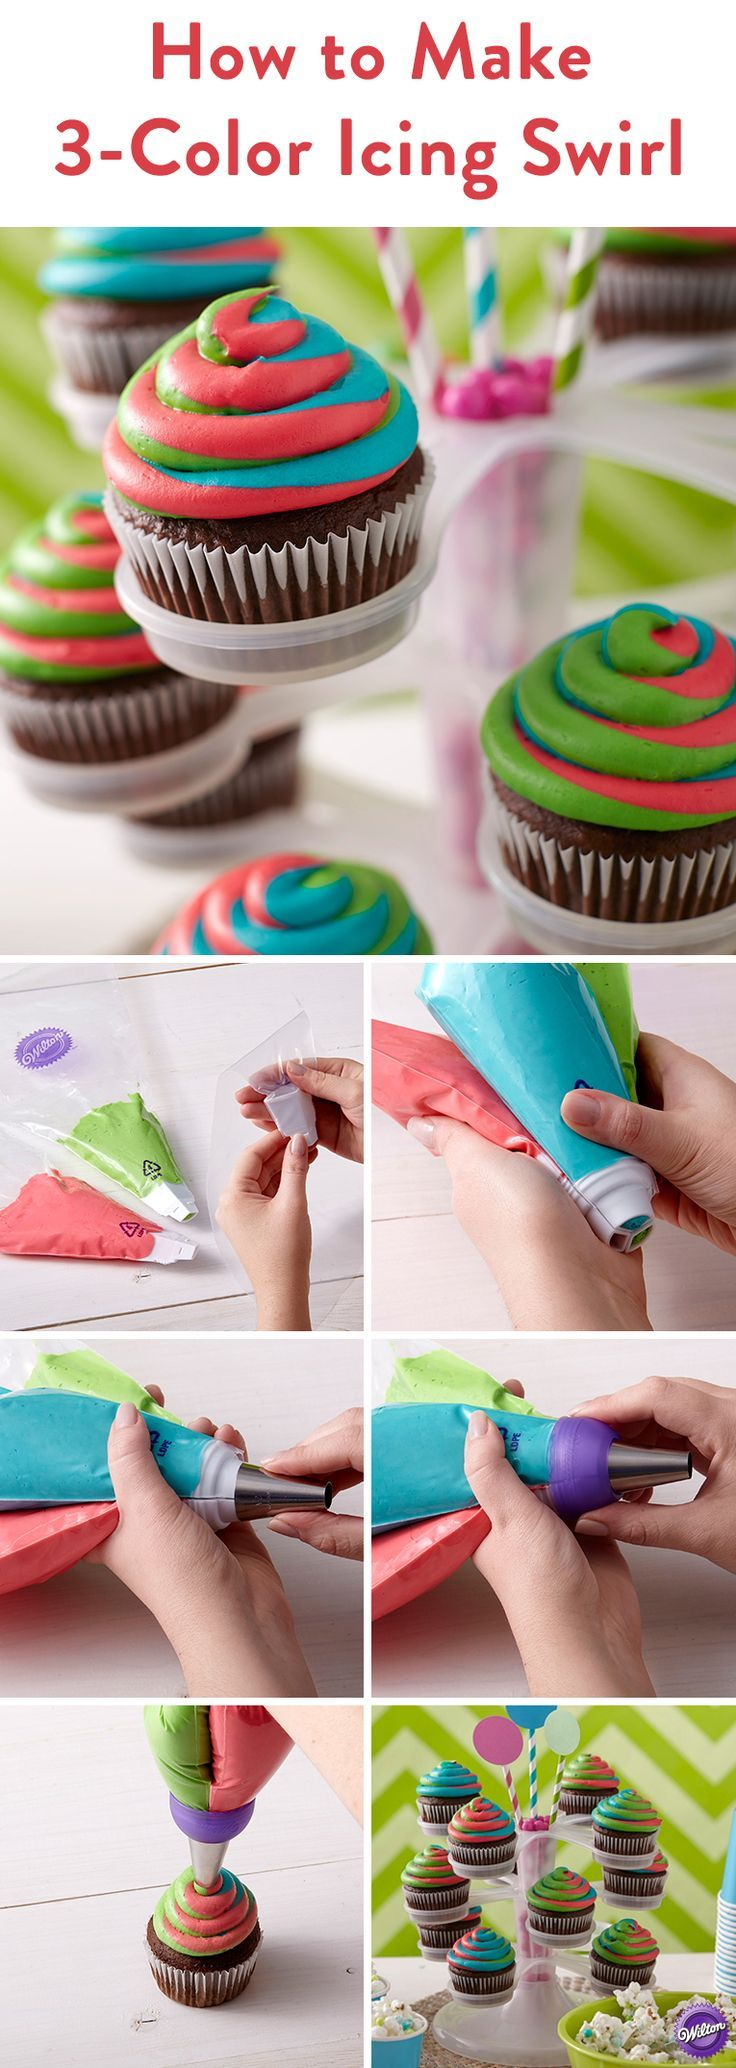 Color Swirl 3-Color Coupler - Looking for fun cupcake decorating ideas? Use the Wilton Color Swirl coupler to combine up to 3 colors! The coupler fits 2 or 3 icing bags together so you can easily pipe flawless multi-color icing swirls. Make tie dye frosting or rainbow cupcakes and color-coordinated treats! Swirl icing colors to match team, school or party colors. The options are endless.